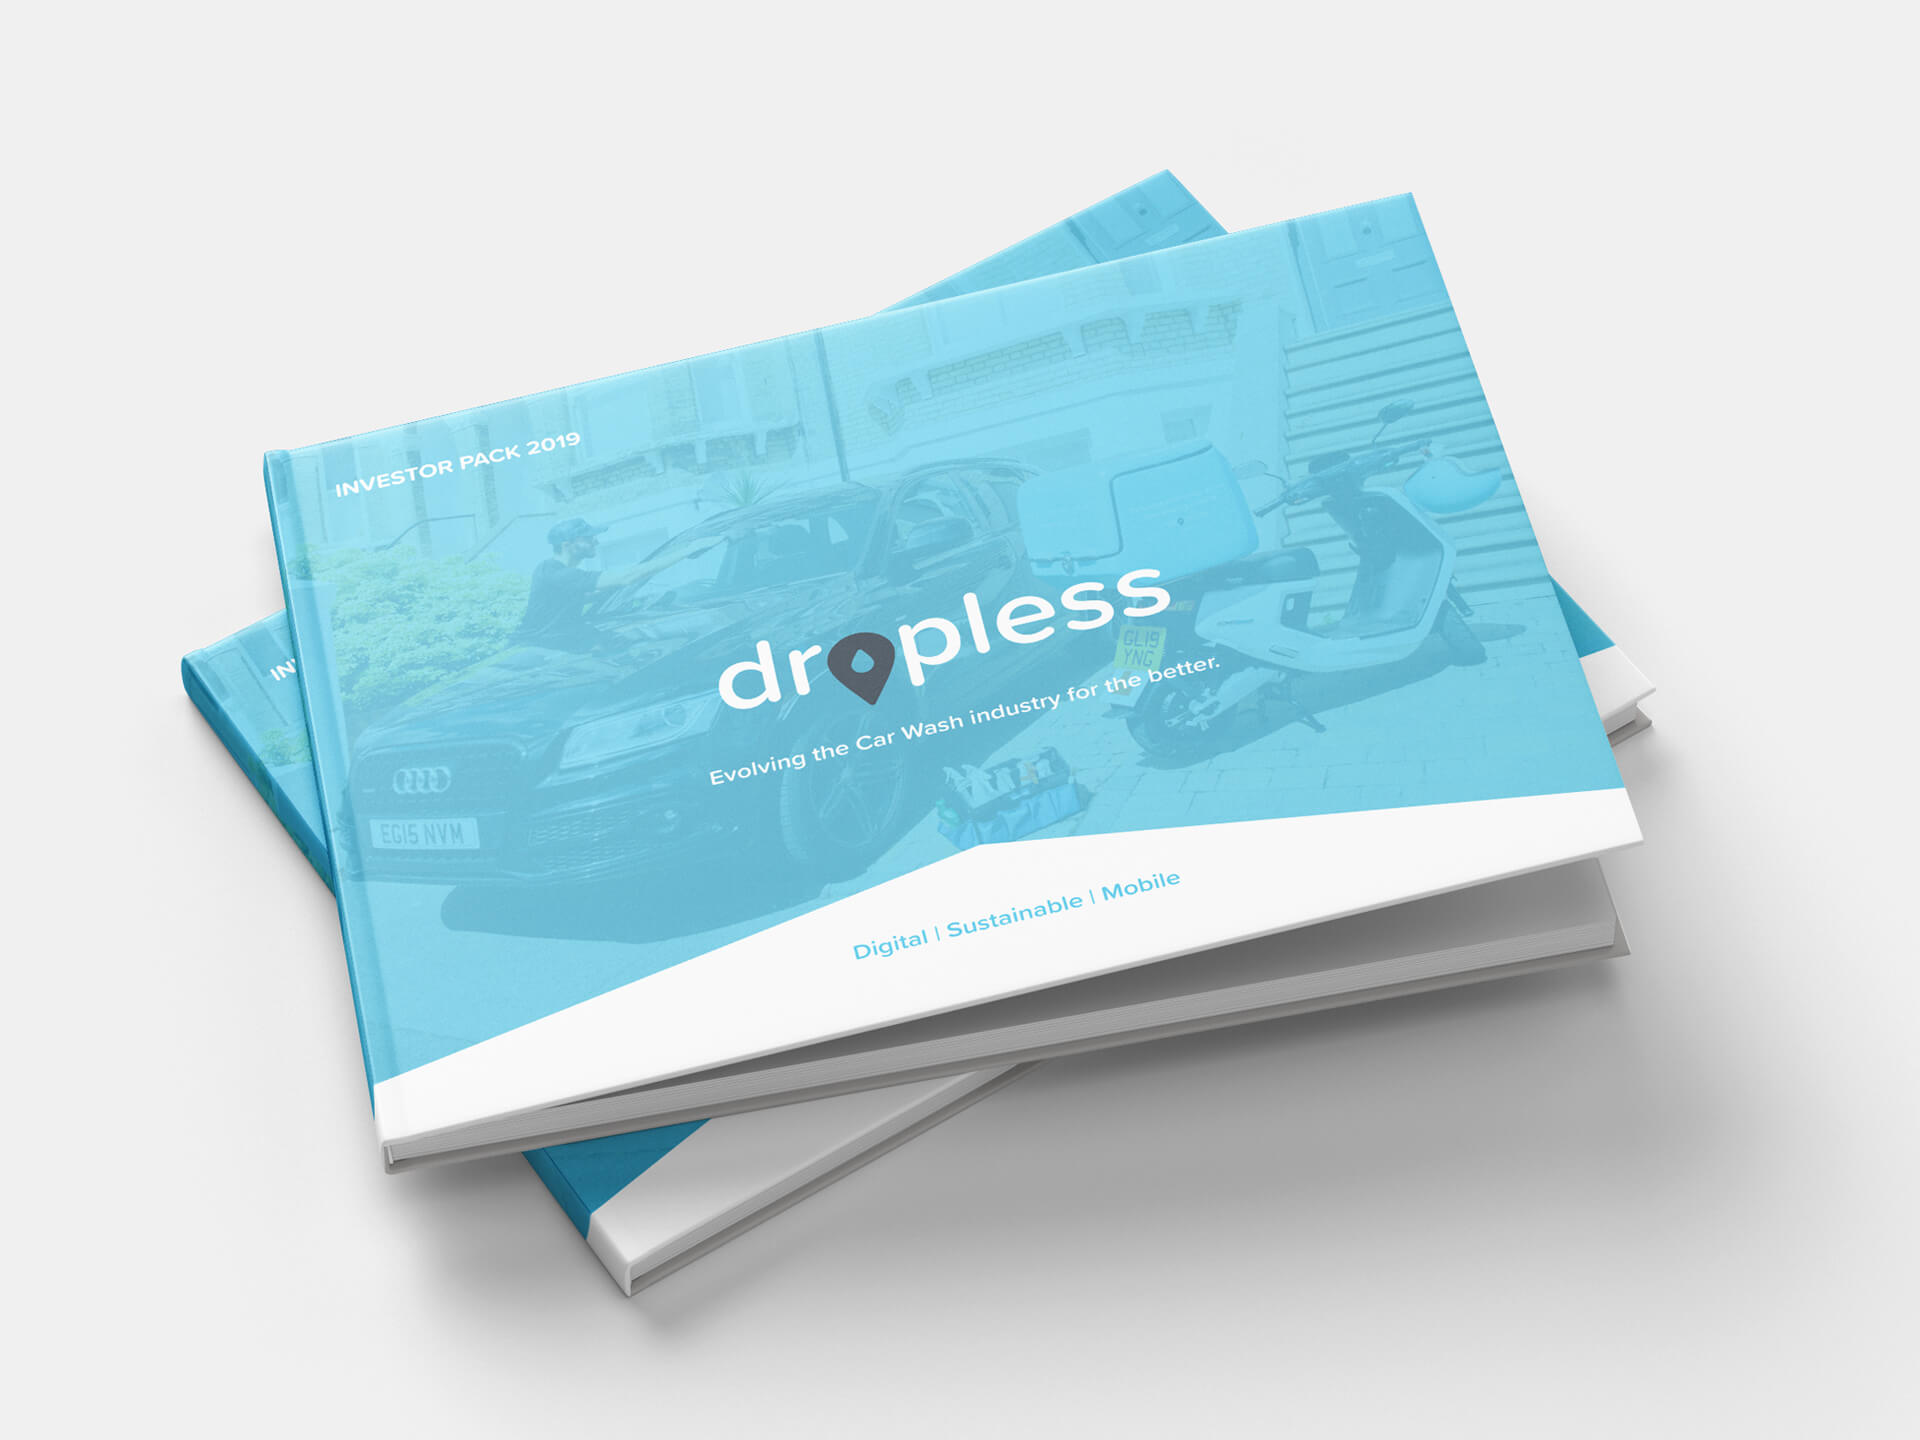 Dropless - Investor pack 1